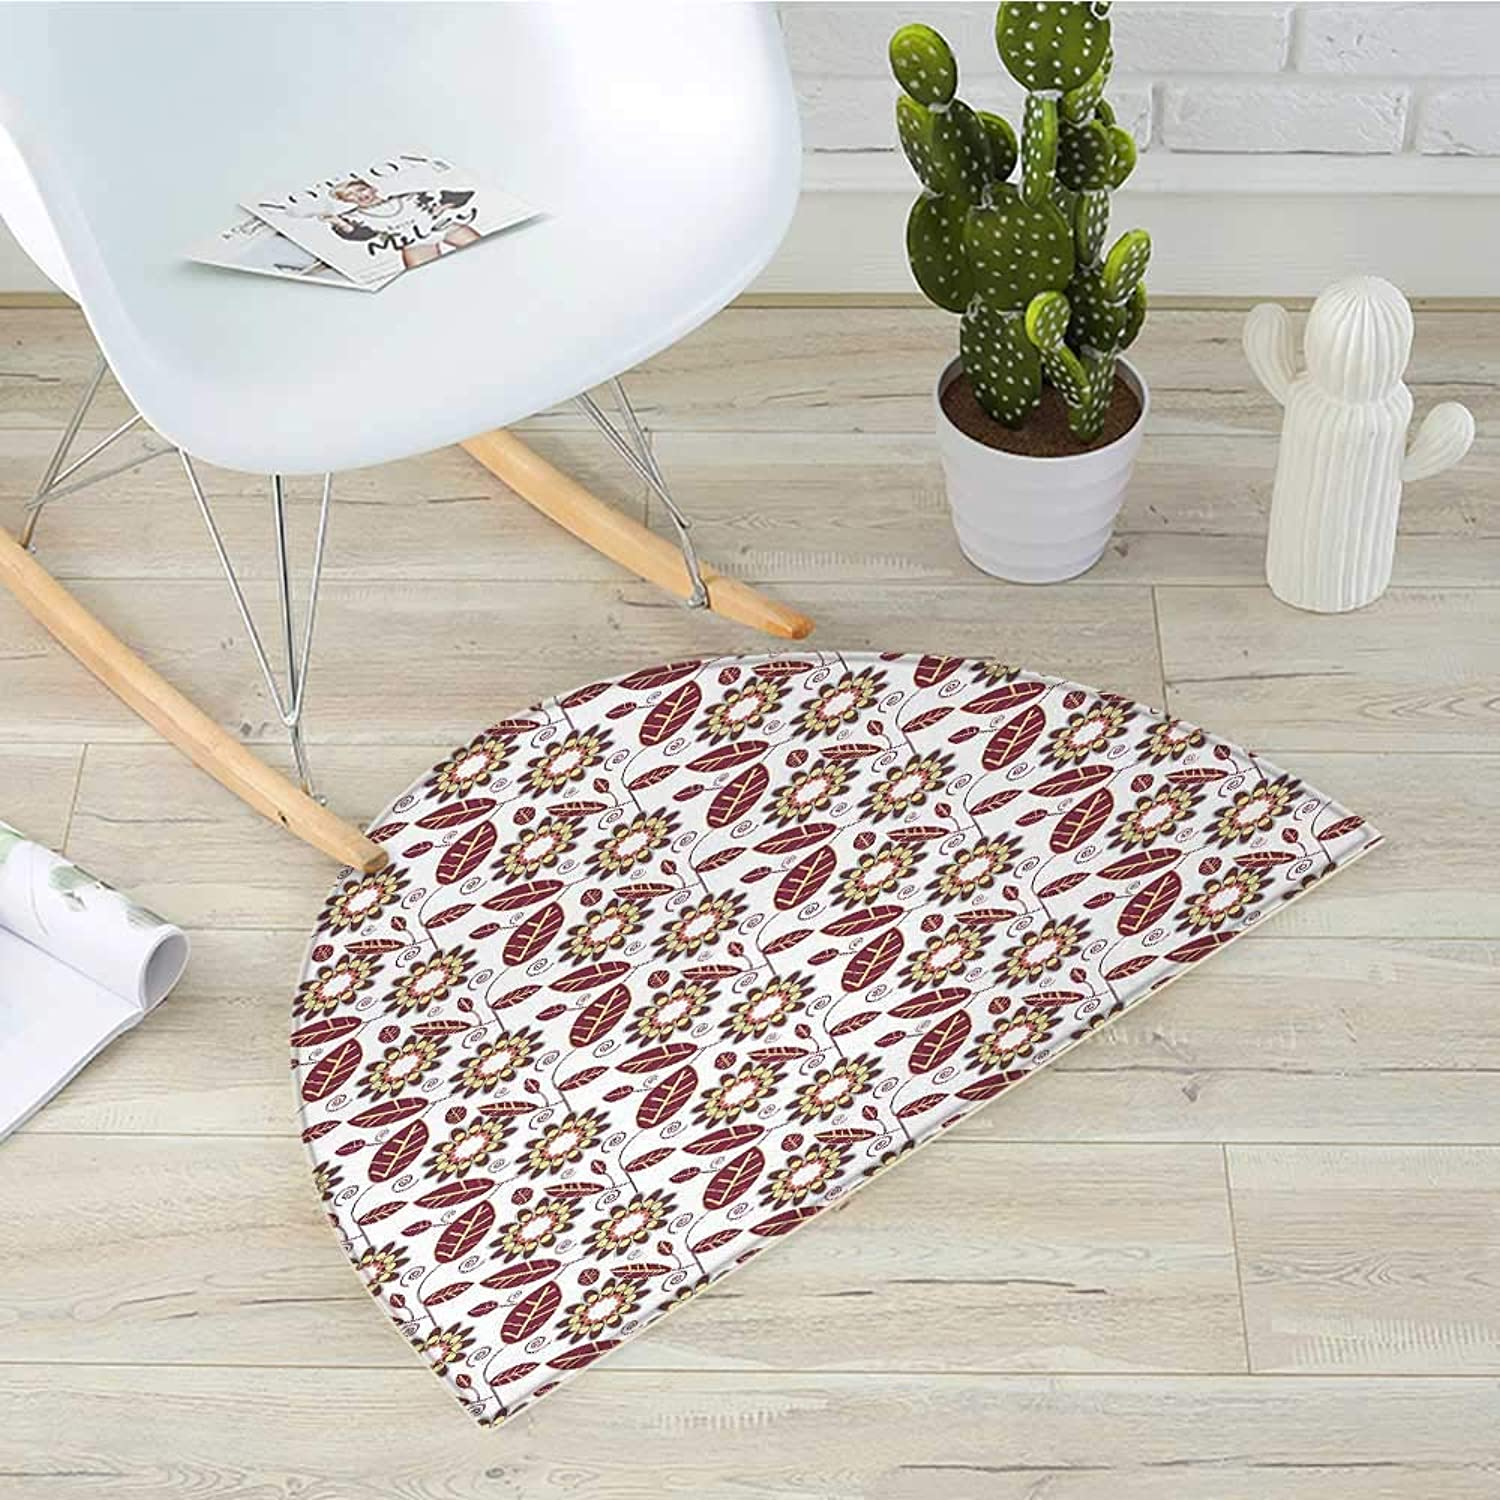 Floral Semicircle Doormat Abstract Leafage with Geometric Flowers Spirals and Curved Stripes Halfmoon doormats H 43.3  xD 64.9  Maroon Coral Pale Yellow